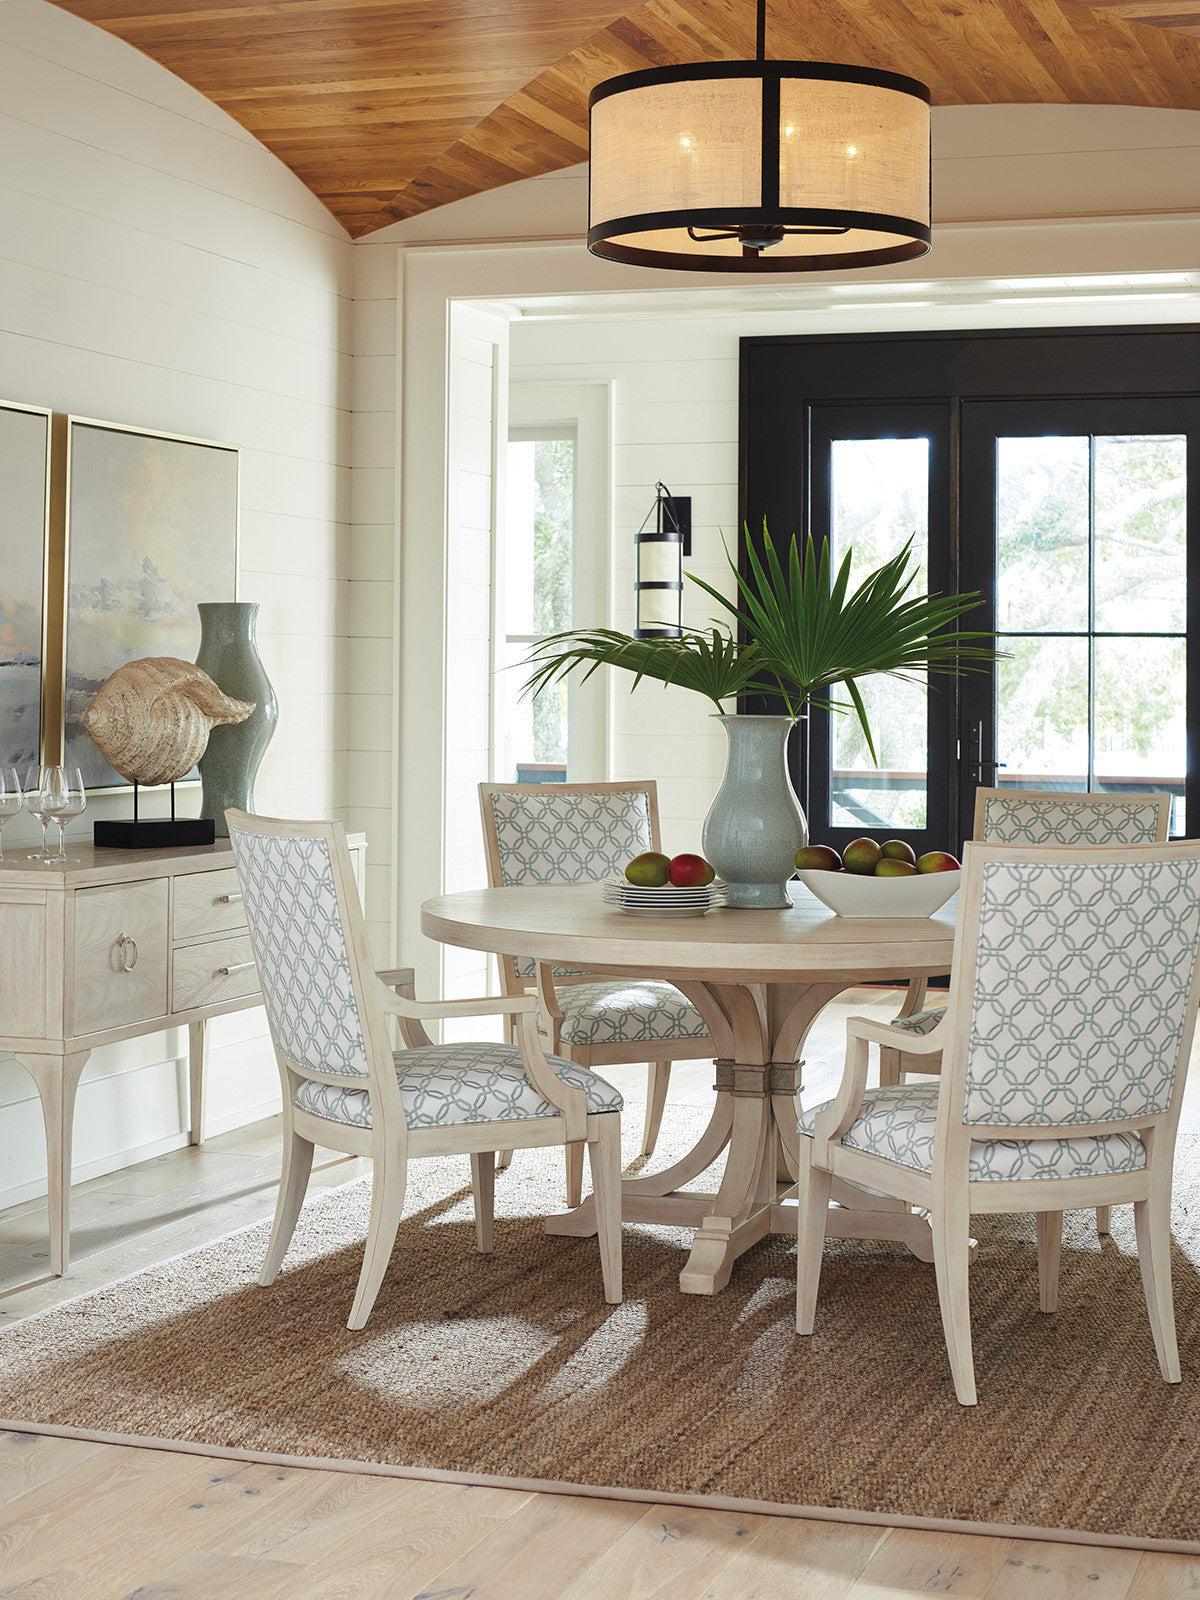 Magnolia Round Dining Table in Sailcloth